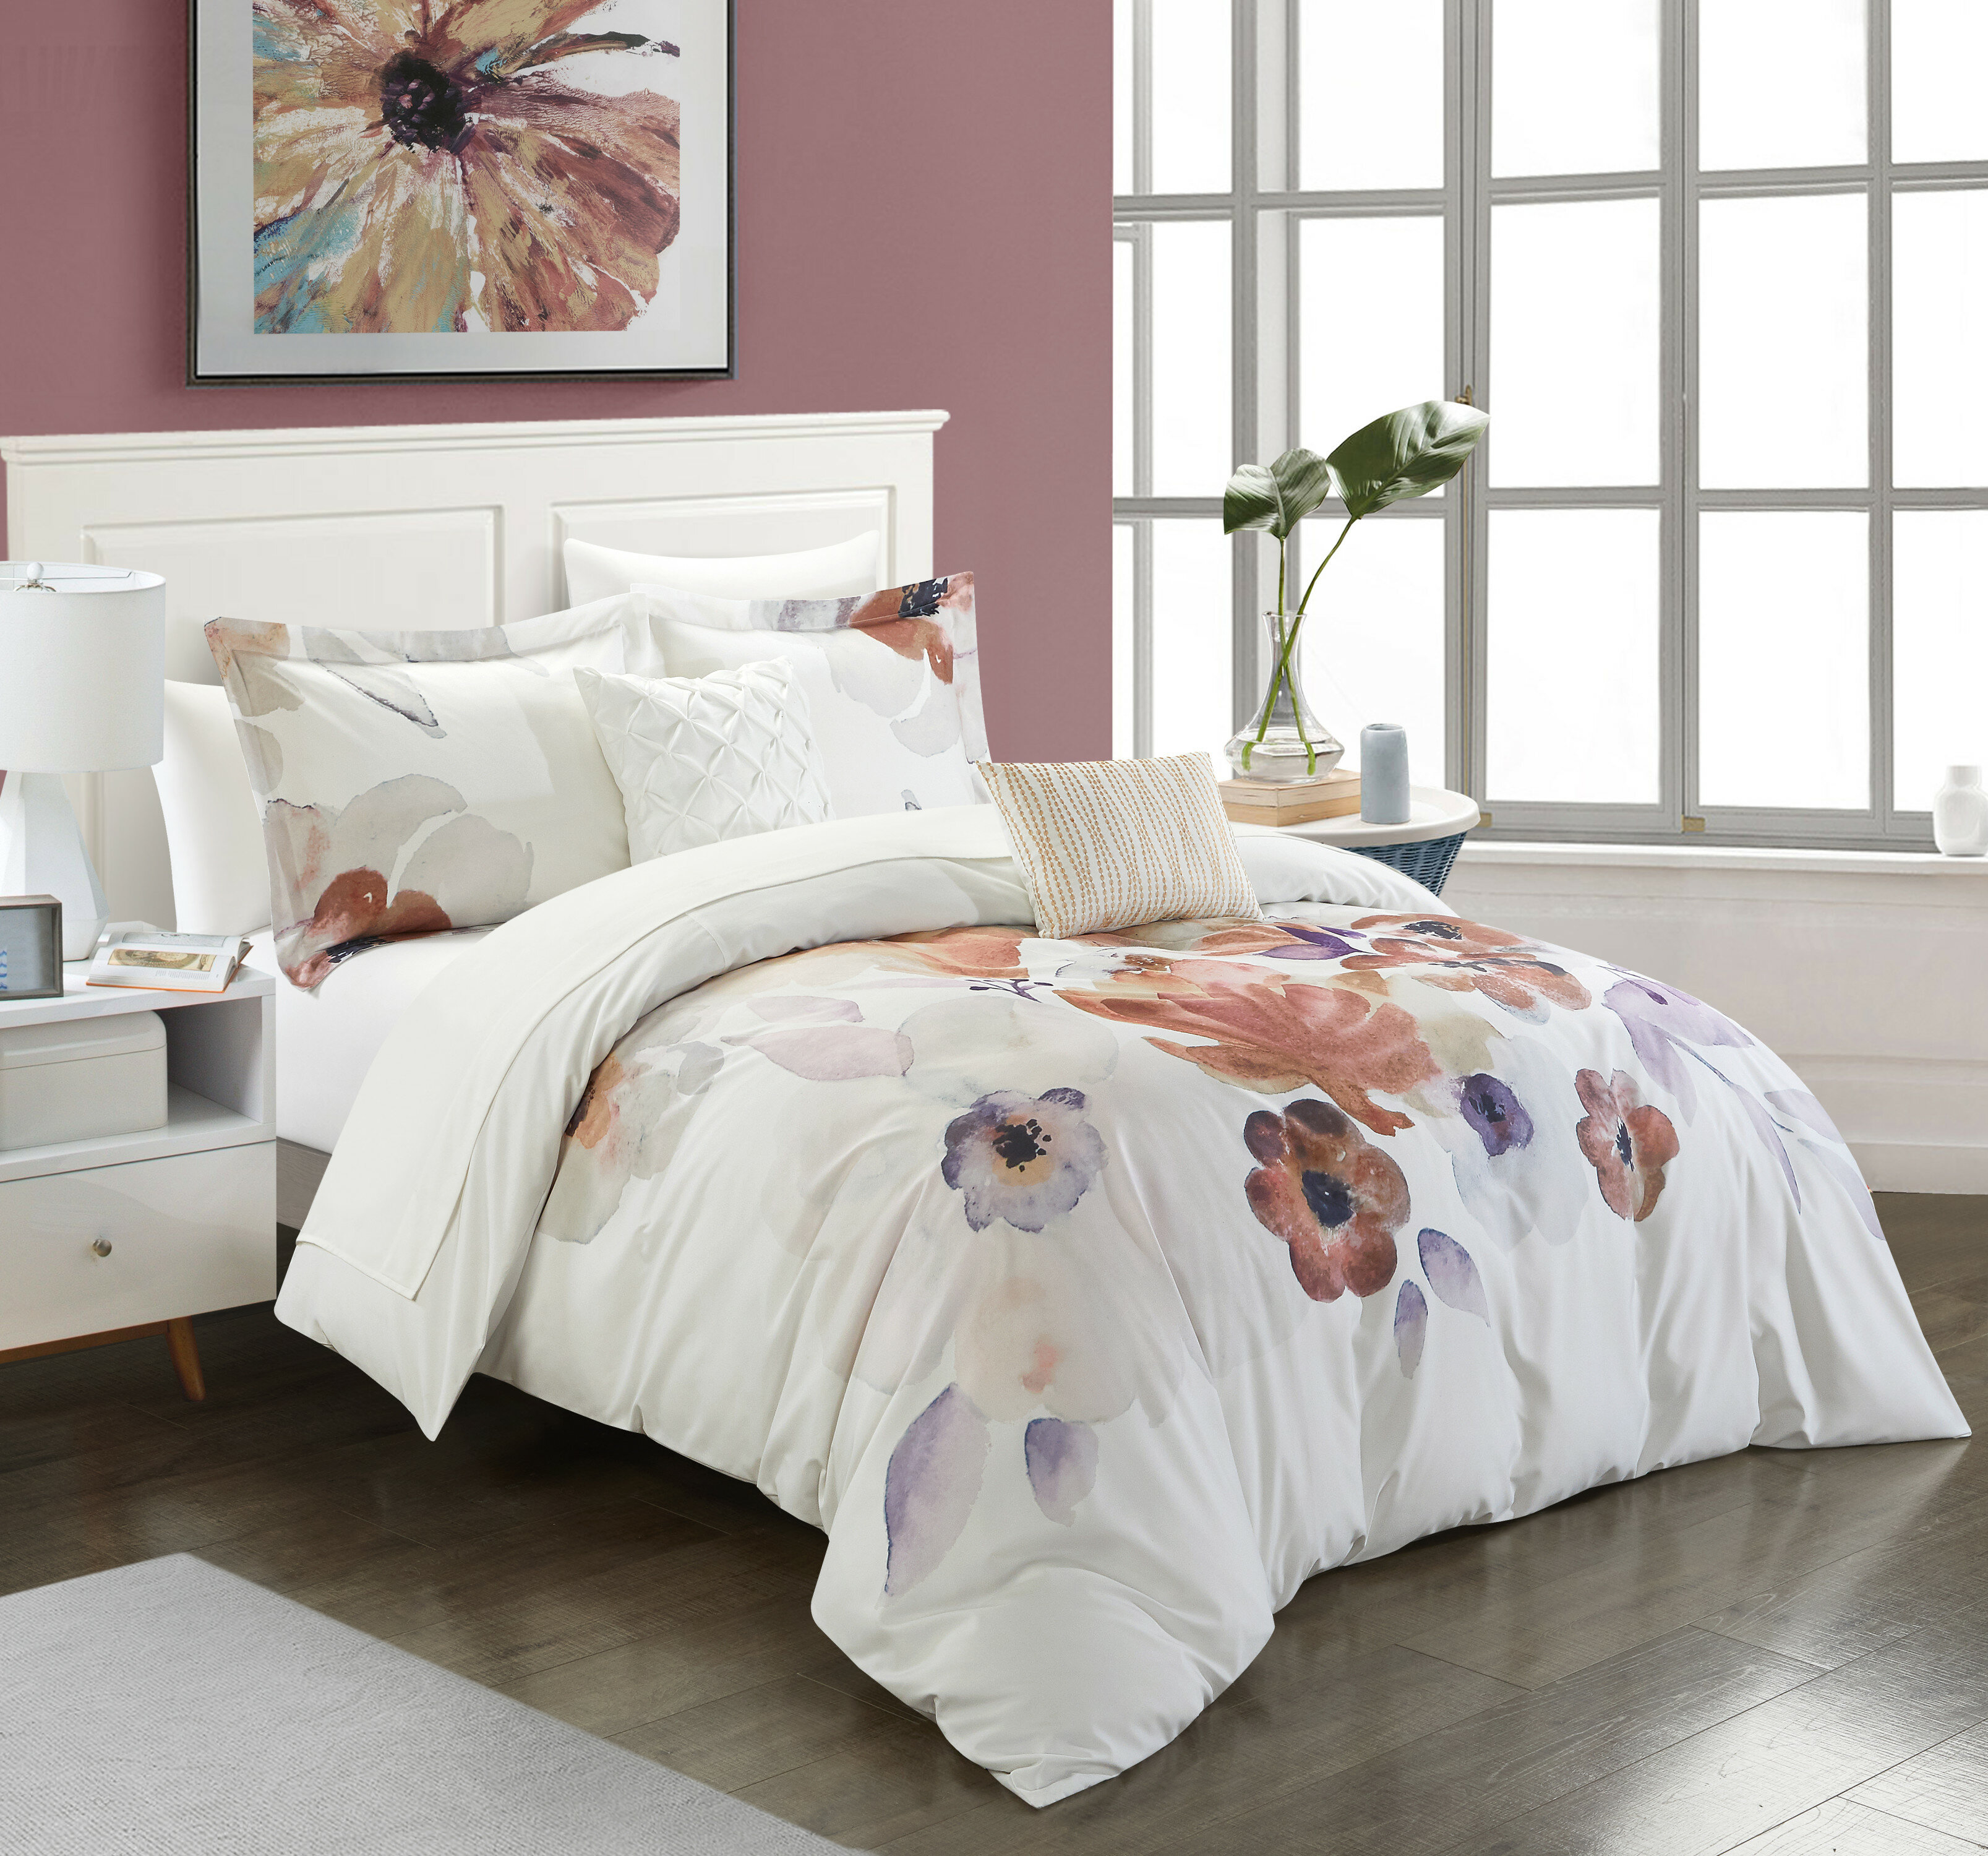 Comforters Bedding Sets Home Garden Bedroom Comforter Set 9pc Bed In A Bag With Sheets Guest Suite Master Bedding